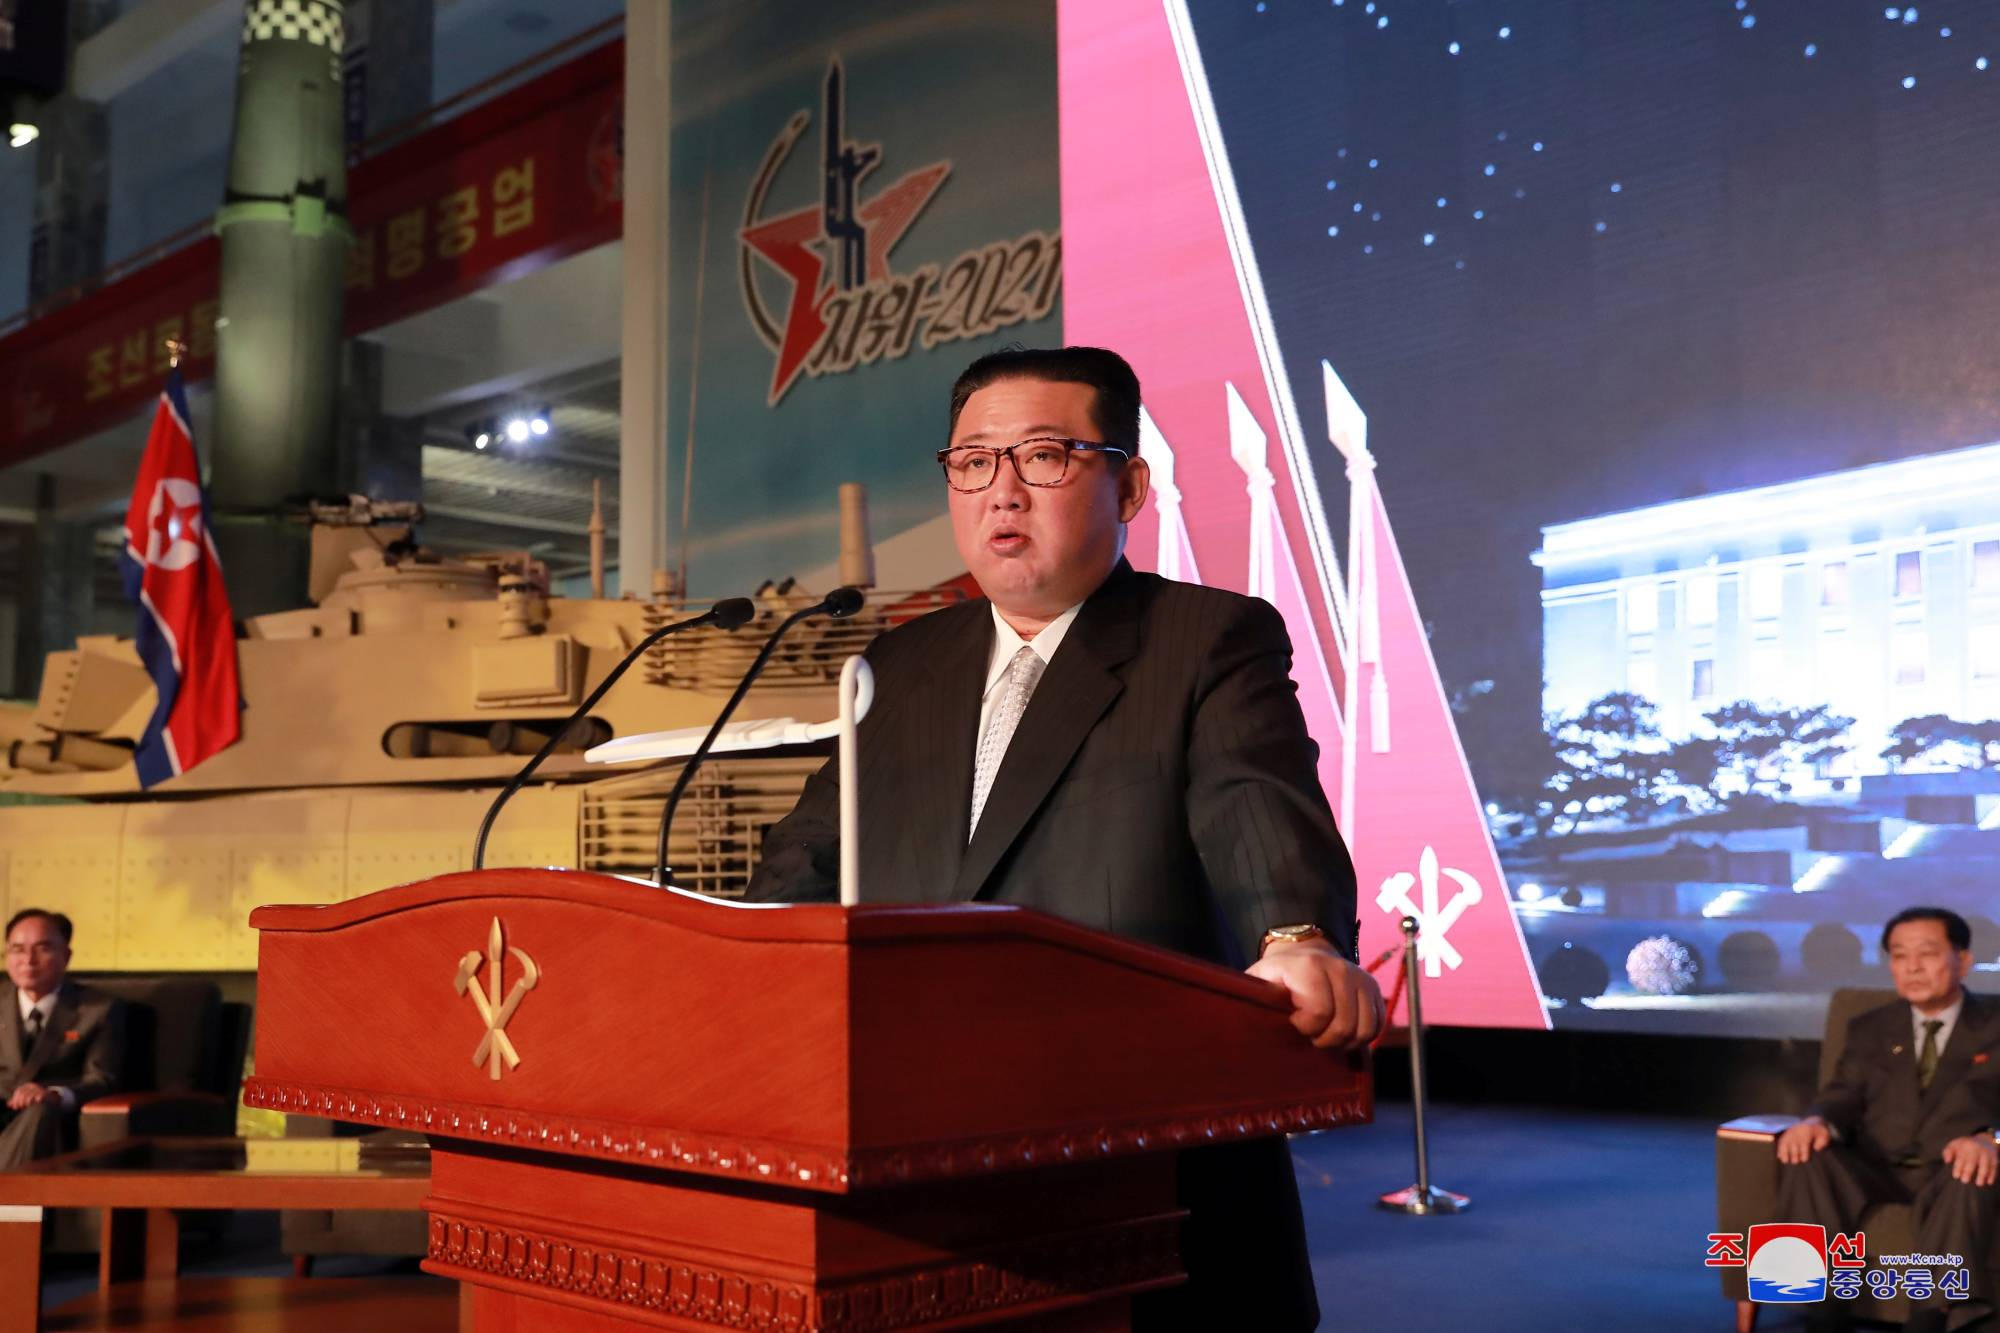 North Korean leader Kim Jong Un speaks at the 'Defense Development Exhibition' in Pyongyang in this undated photo released Tuesday.   KCNA / VIA REUTERS